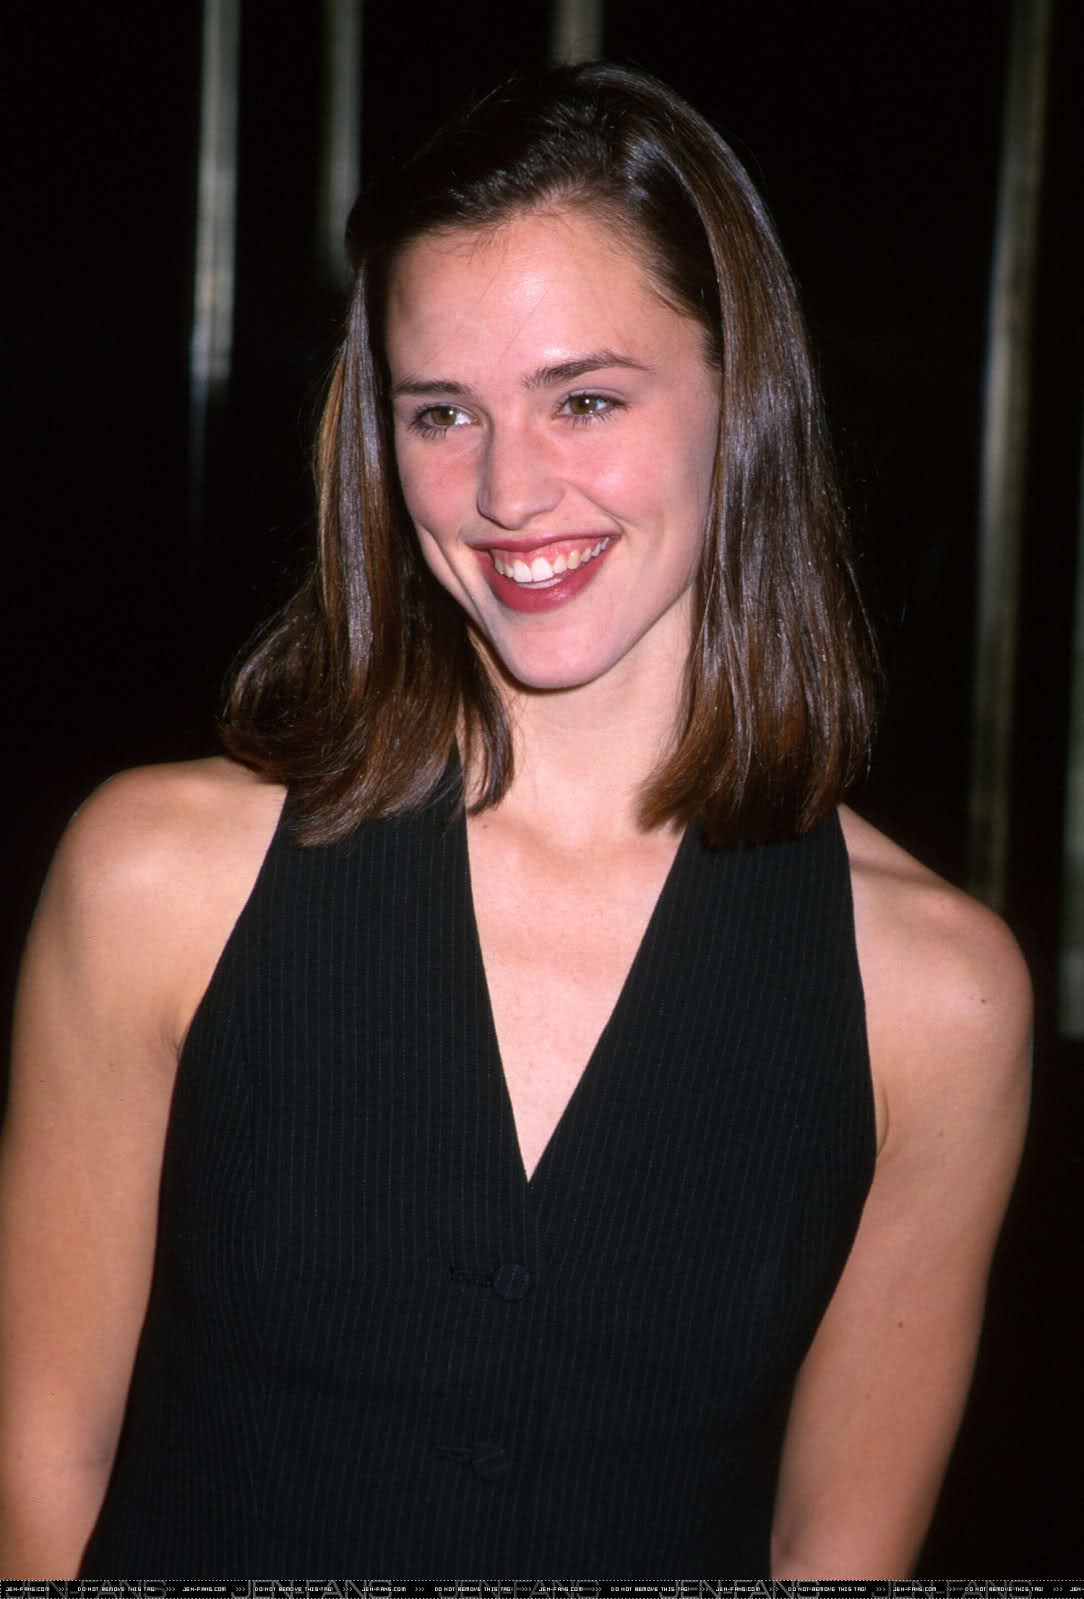 Young Jennifer Garner nudes (96 foto and video), Topless, Is a cute, Instagram, cleavage 2020